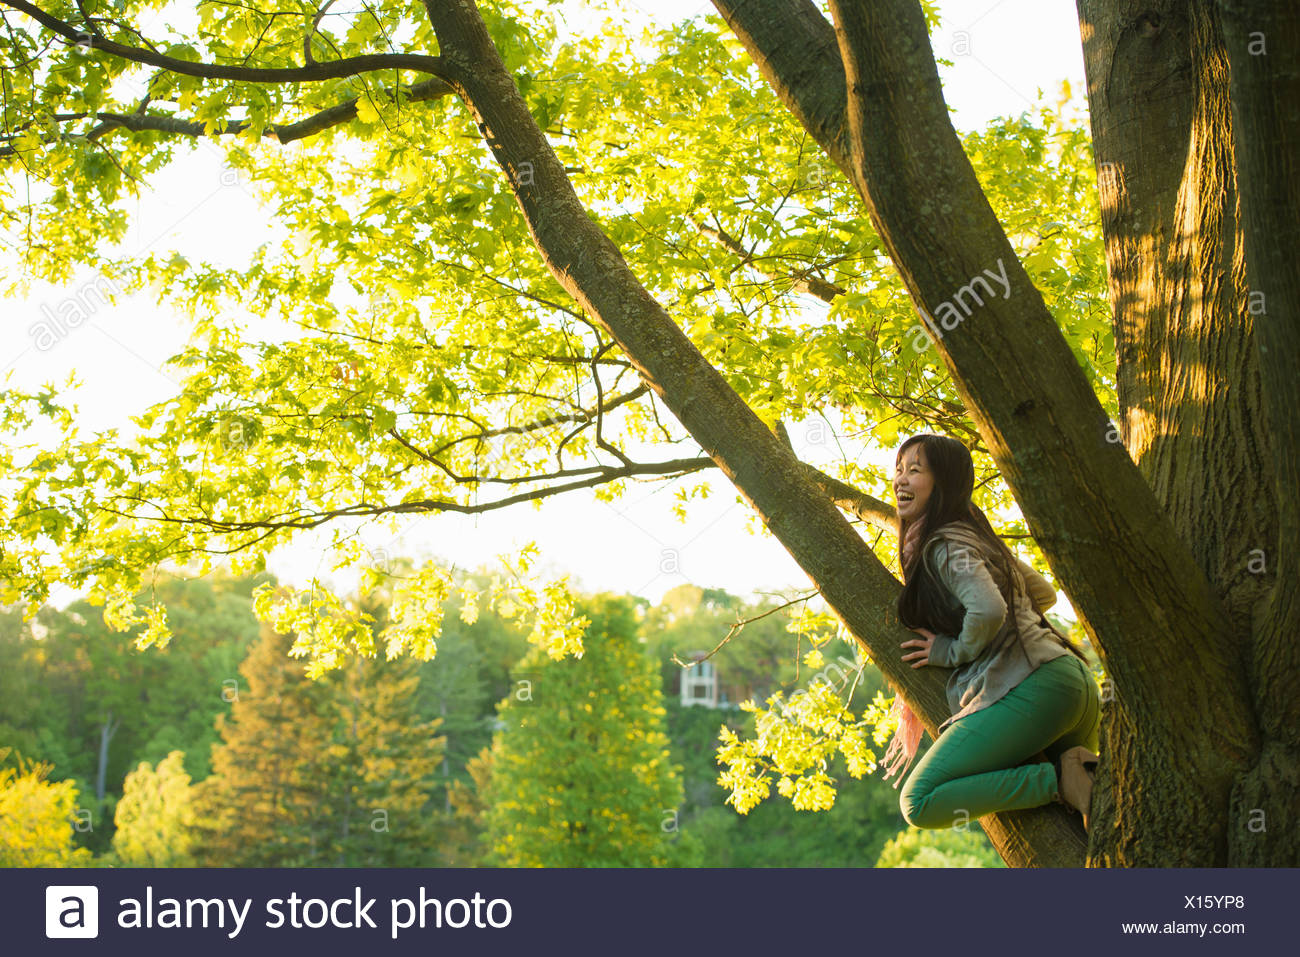 Young female climbing tree in park - Stock Image